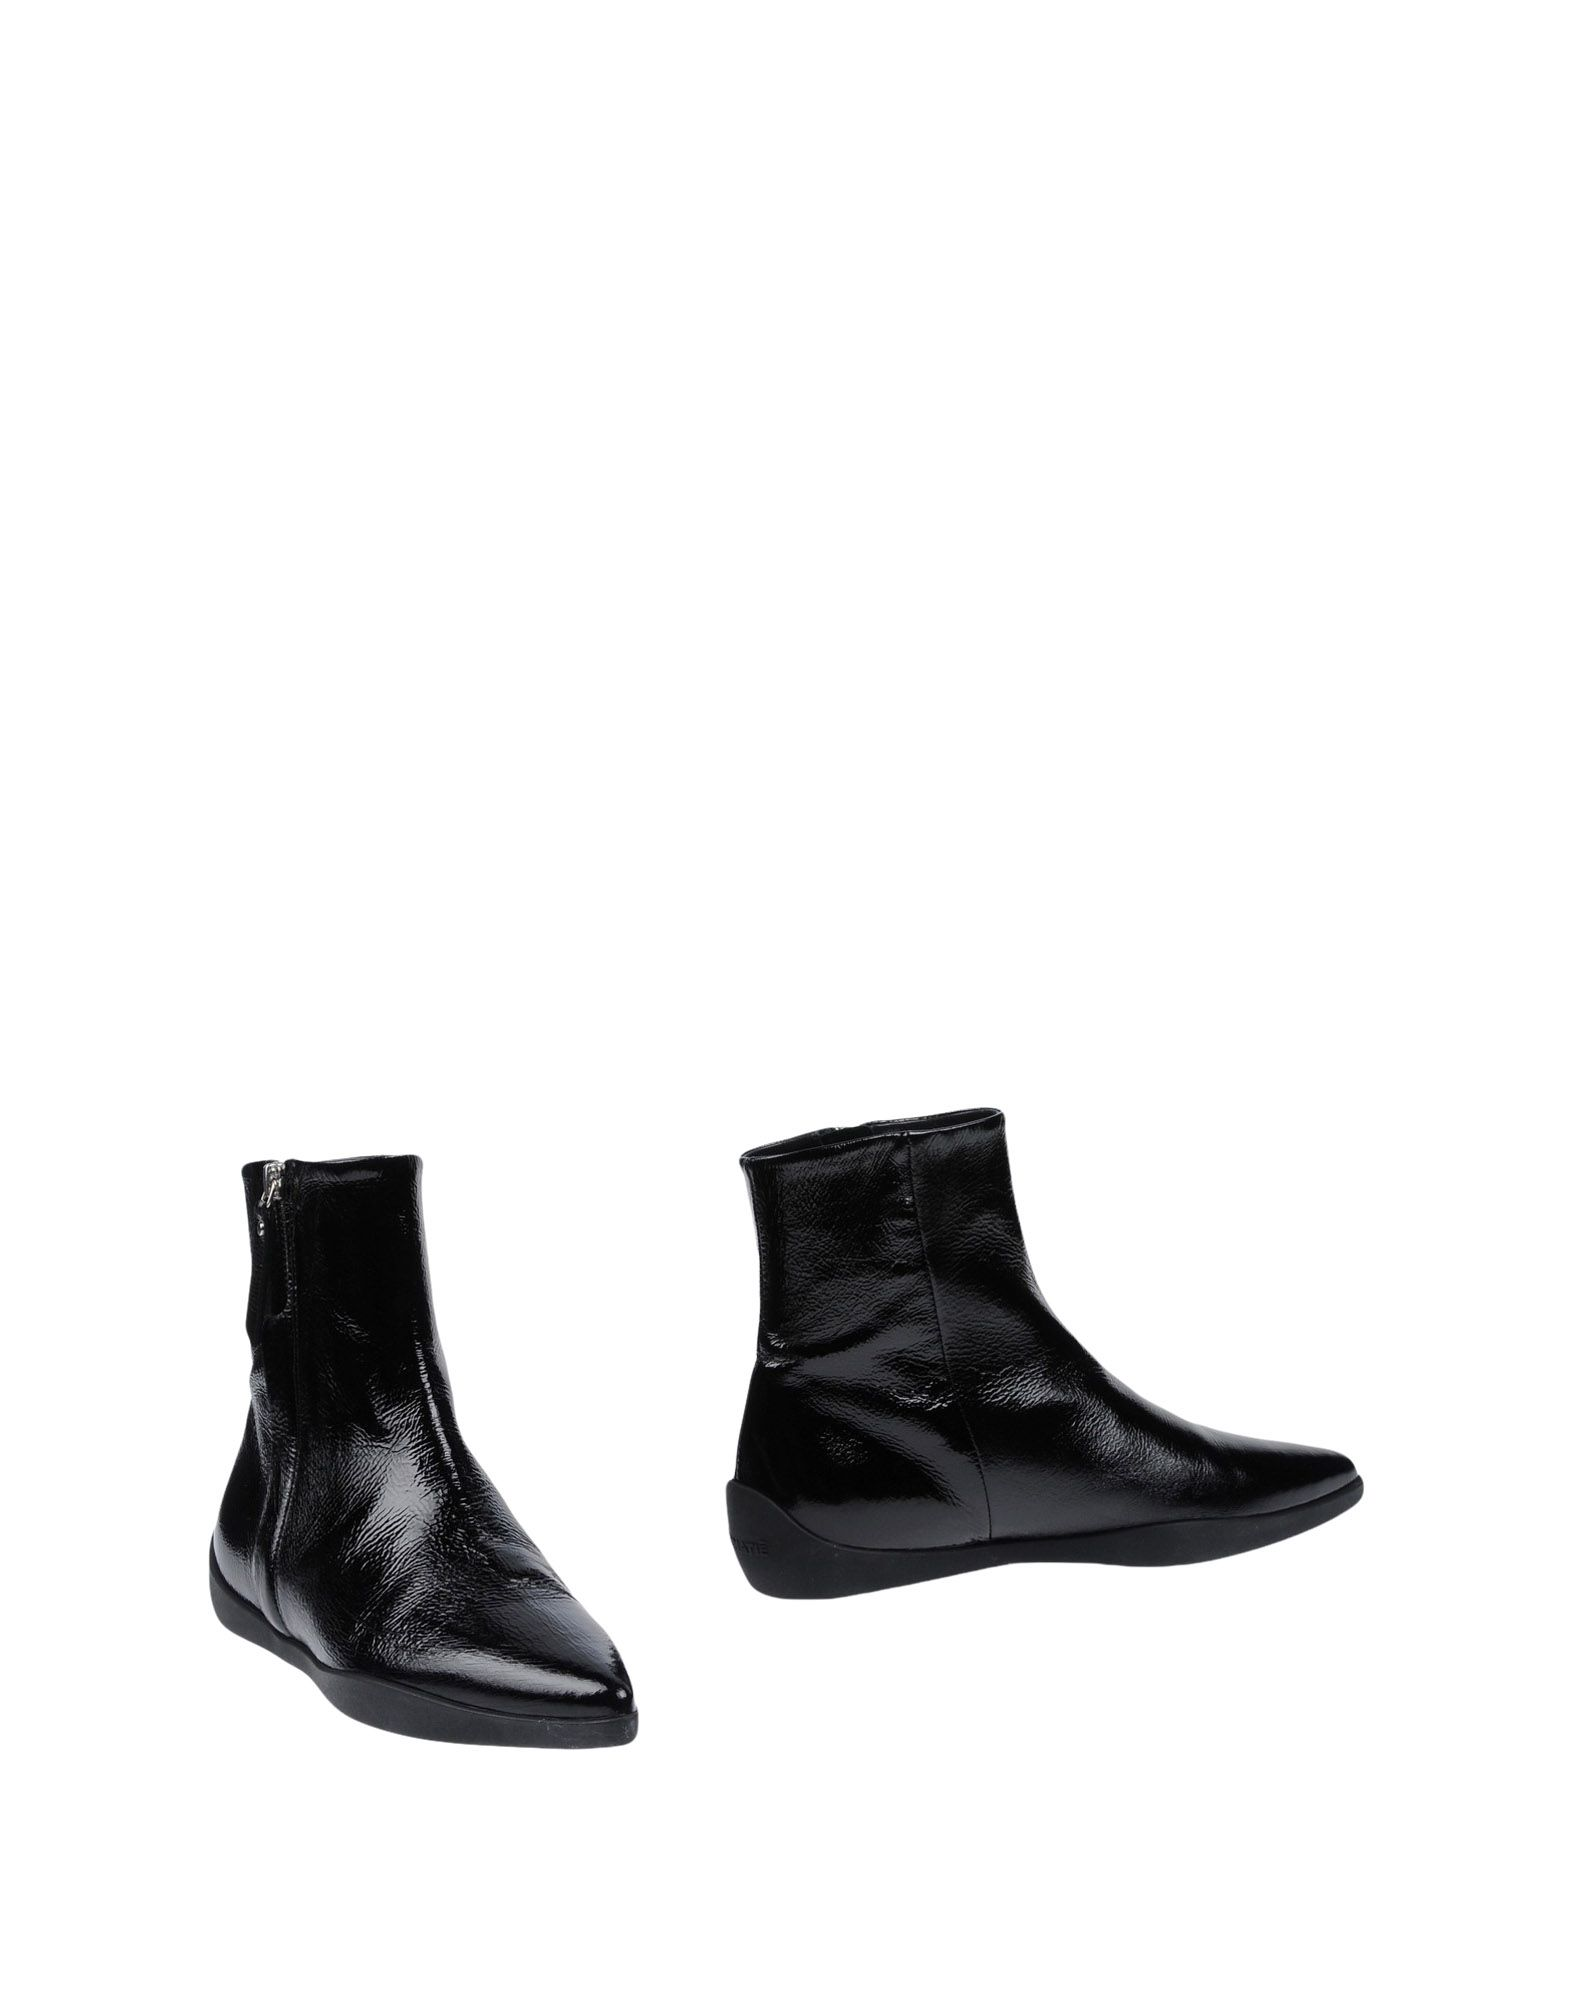 Vic Matiē Ankle Boot Ankle - Women Vic Matiē Ankle Boot Boots online on  Canada - 11457512AB 7584d0